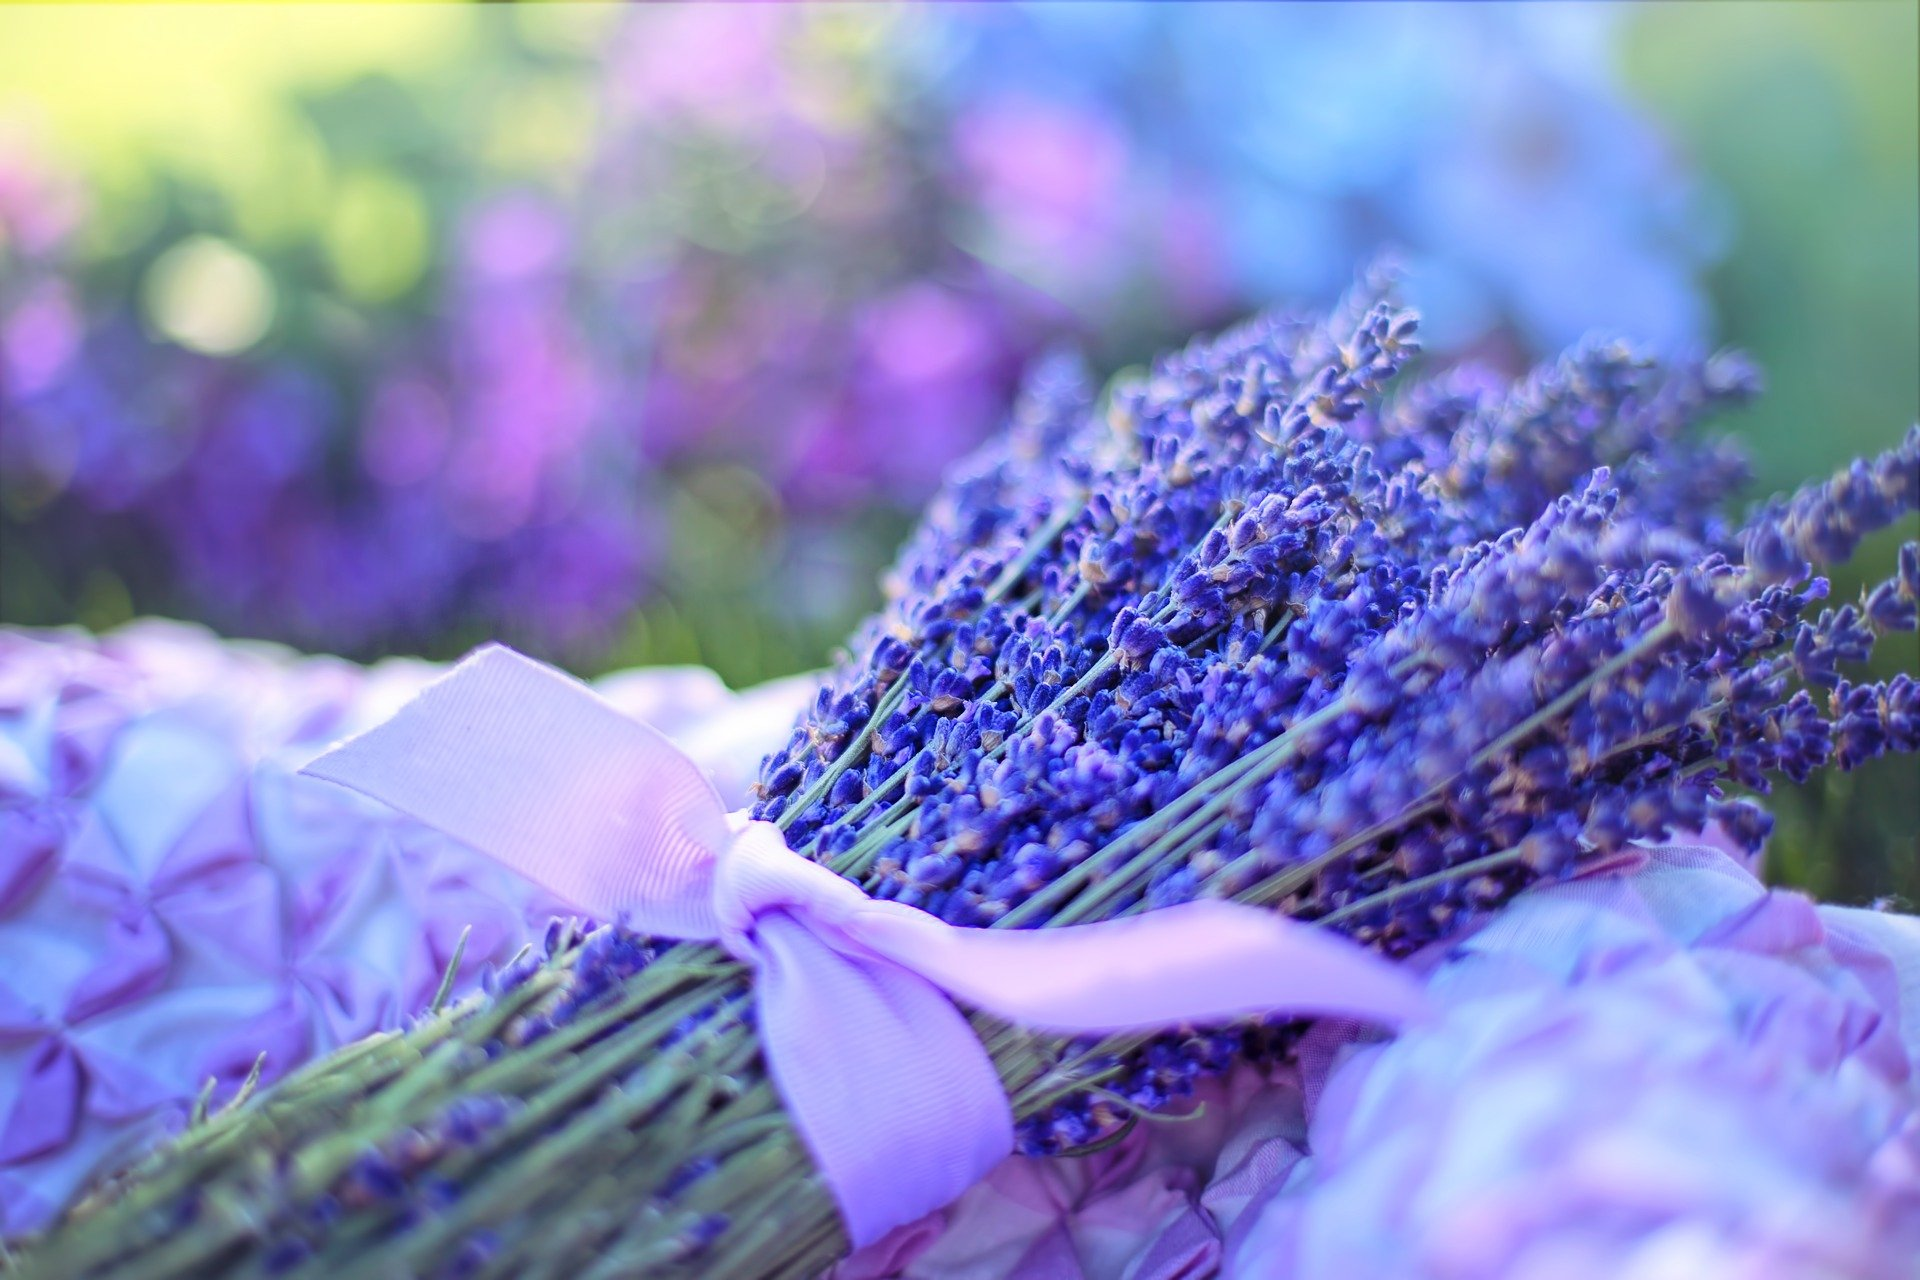 bunch of lavender flowers